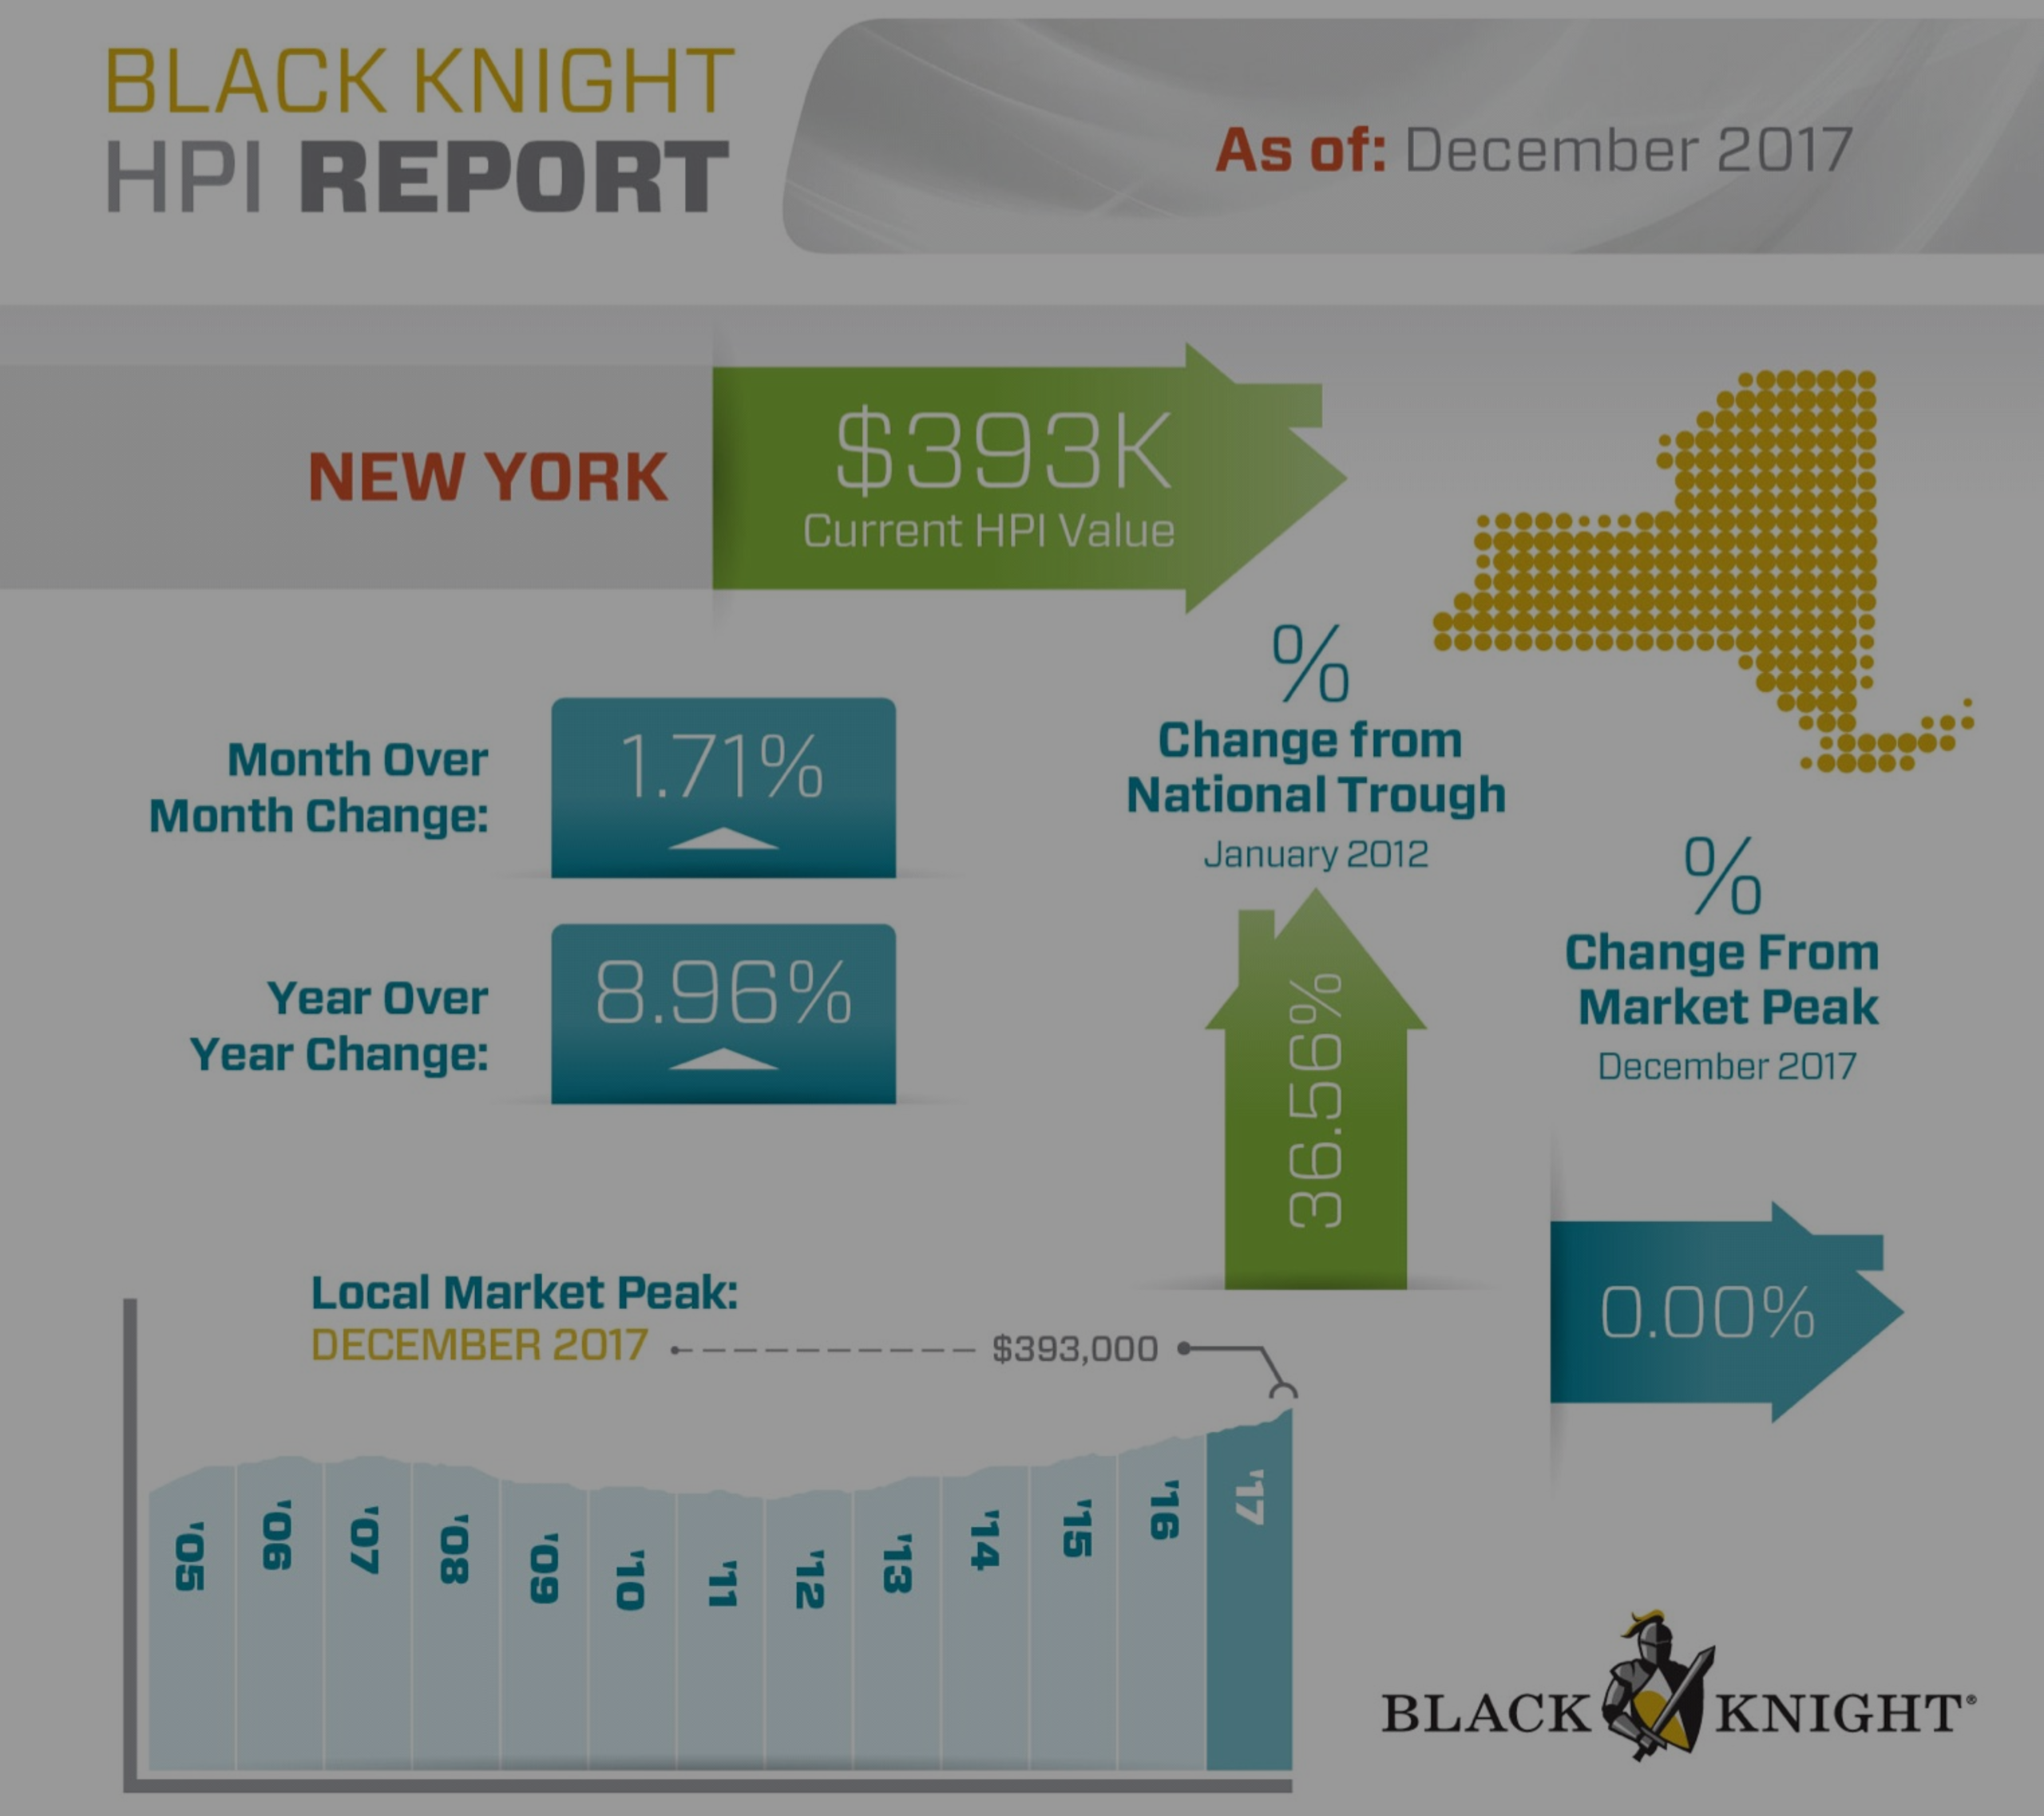 Black Knight Releases Report for 2017